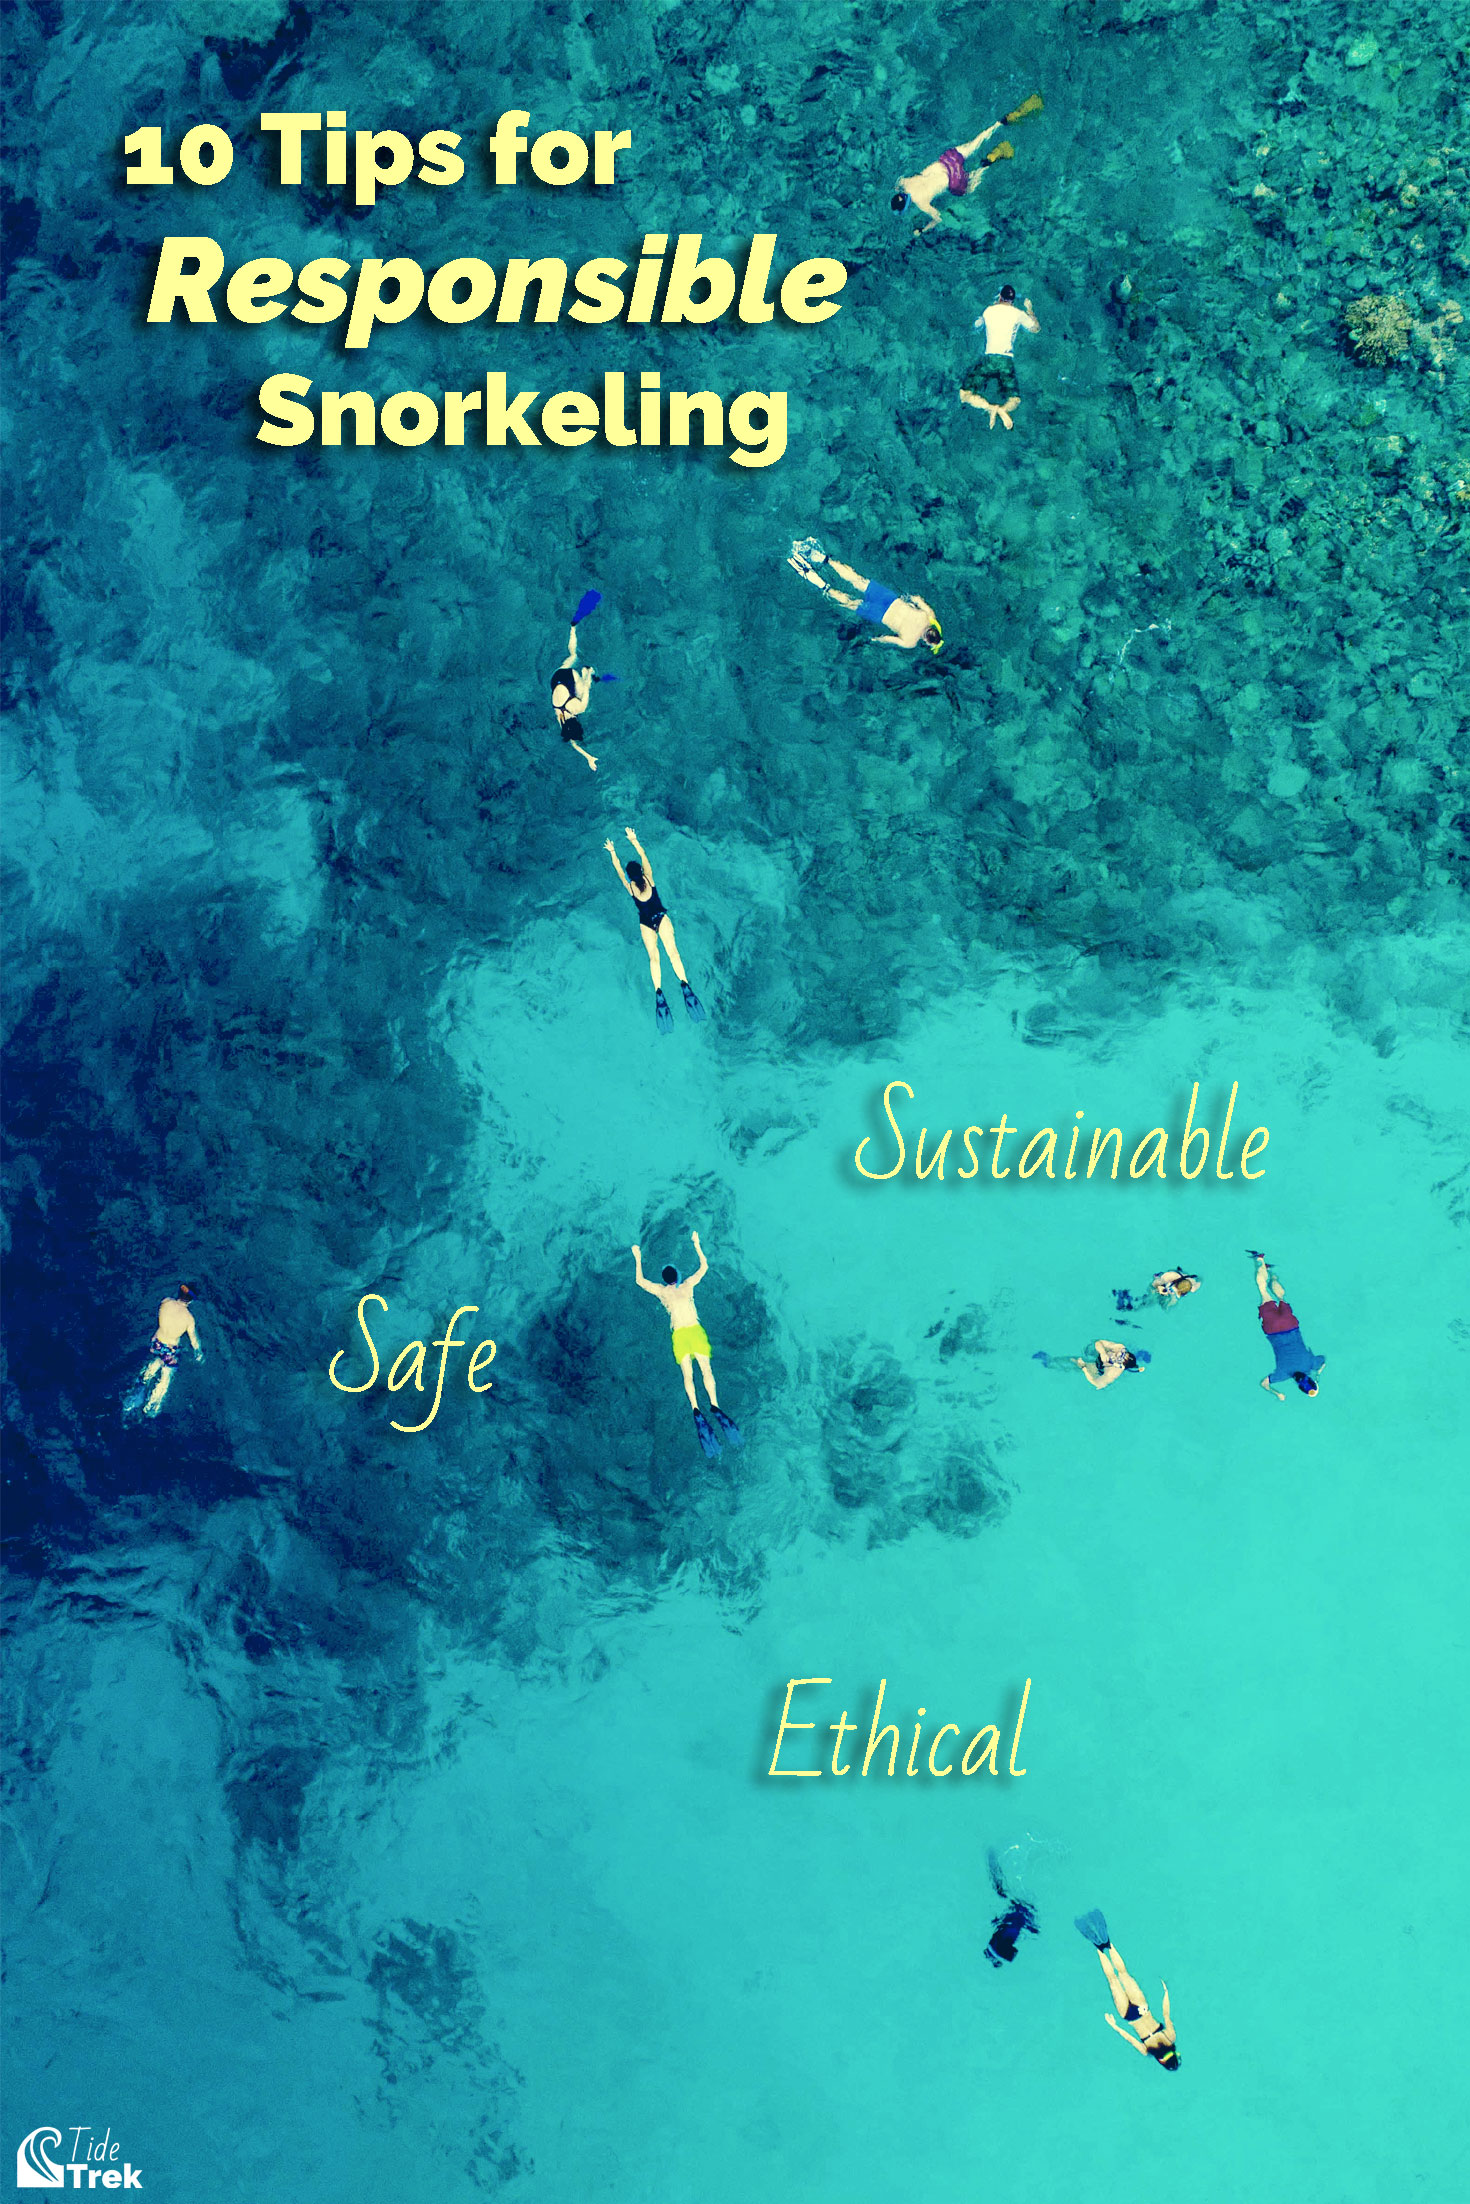 Overhead drone photo of several snorkelers on a coral reef.